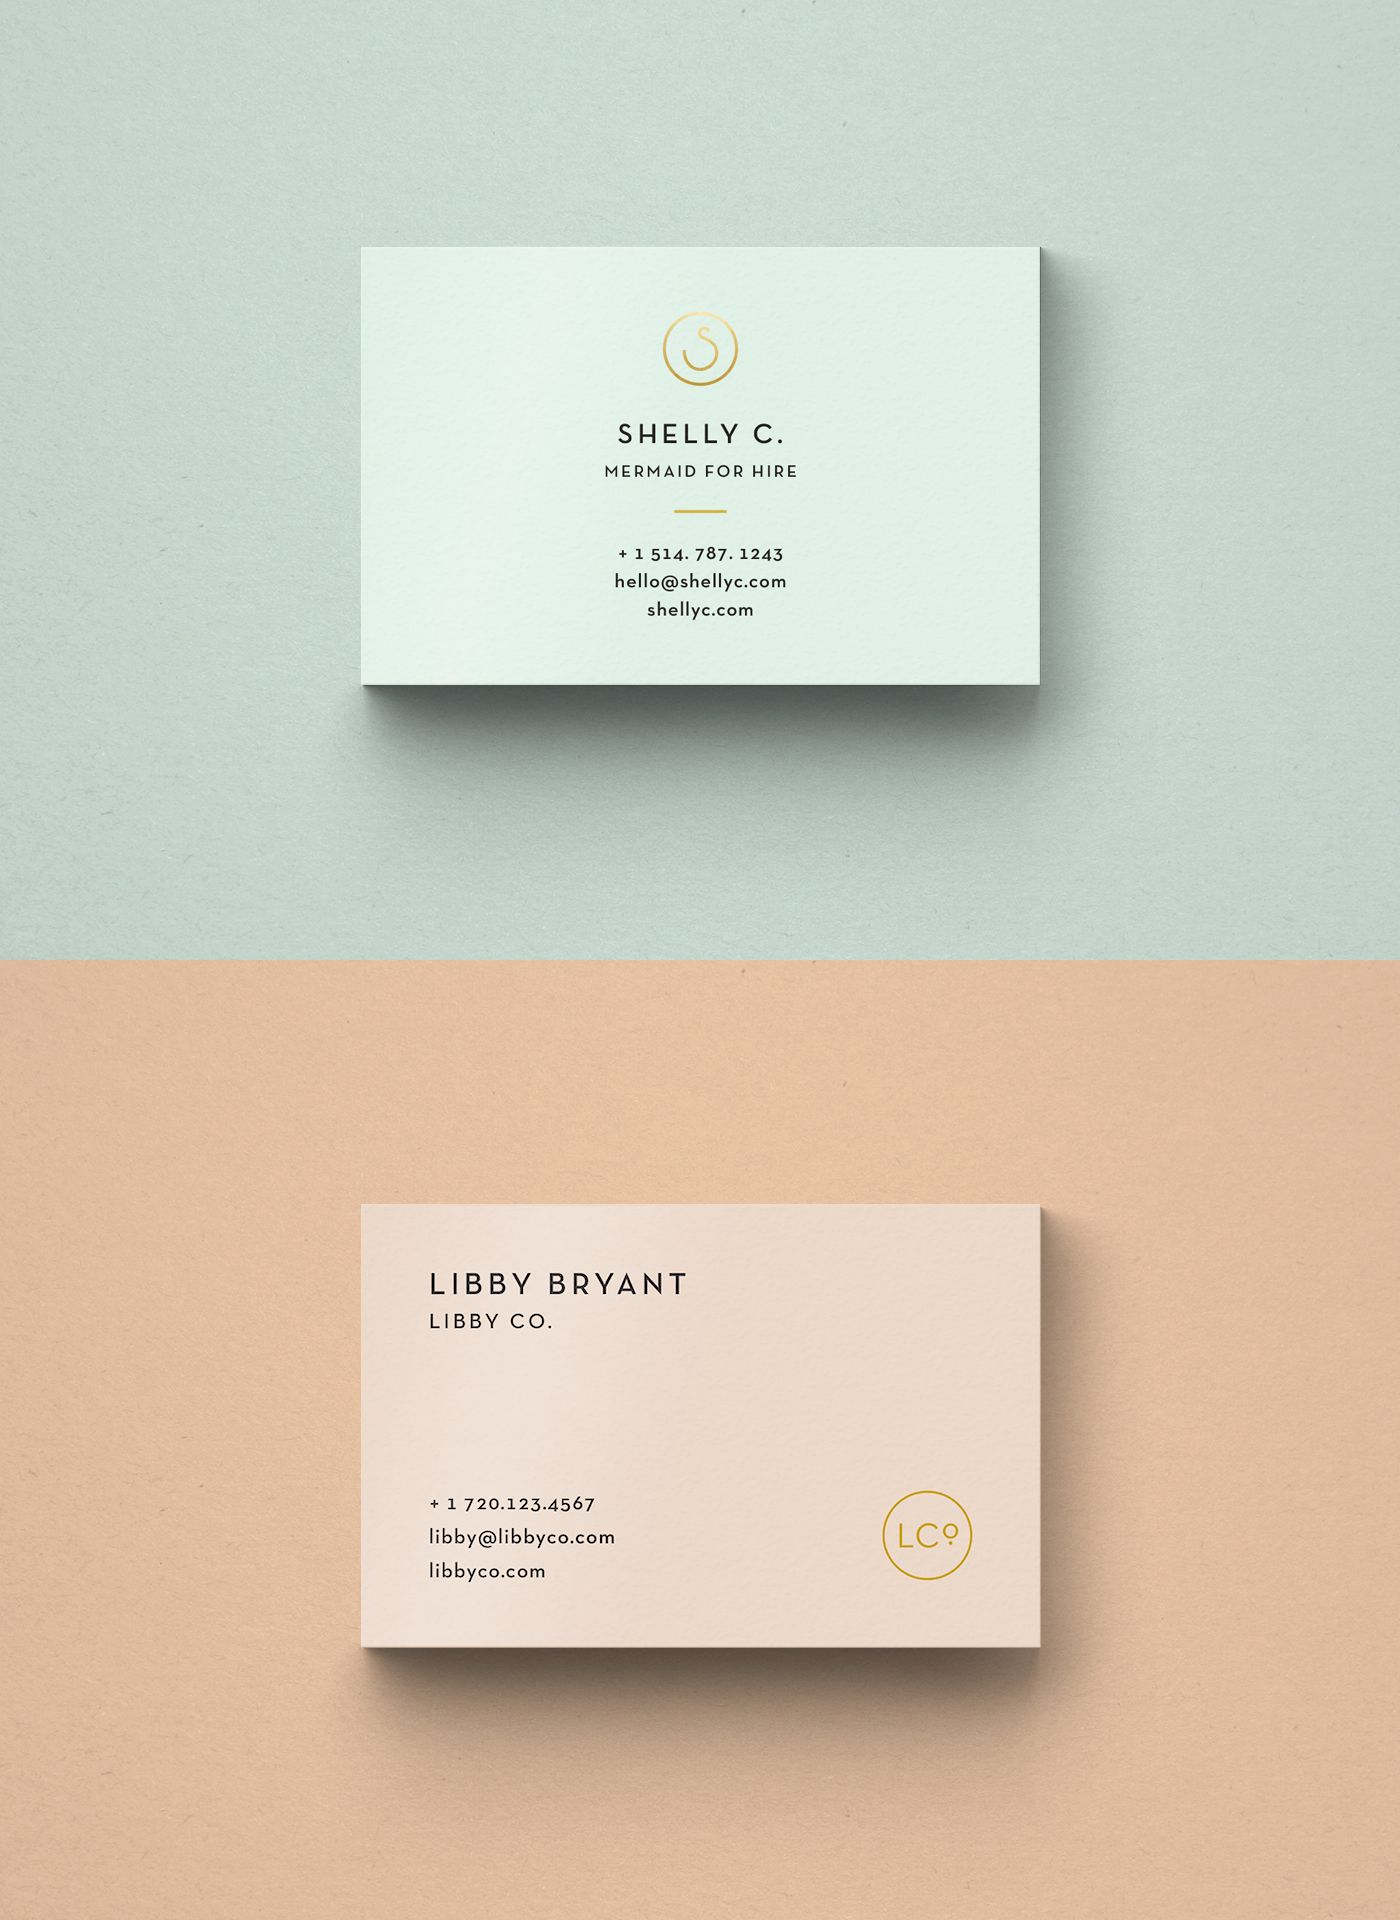 Free business card templates card templates business cards and free designer business card templates stylish branding at its finest click to download wajeb Image collections